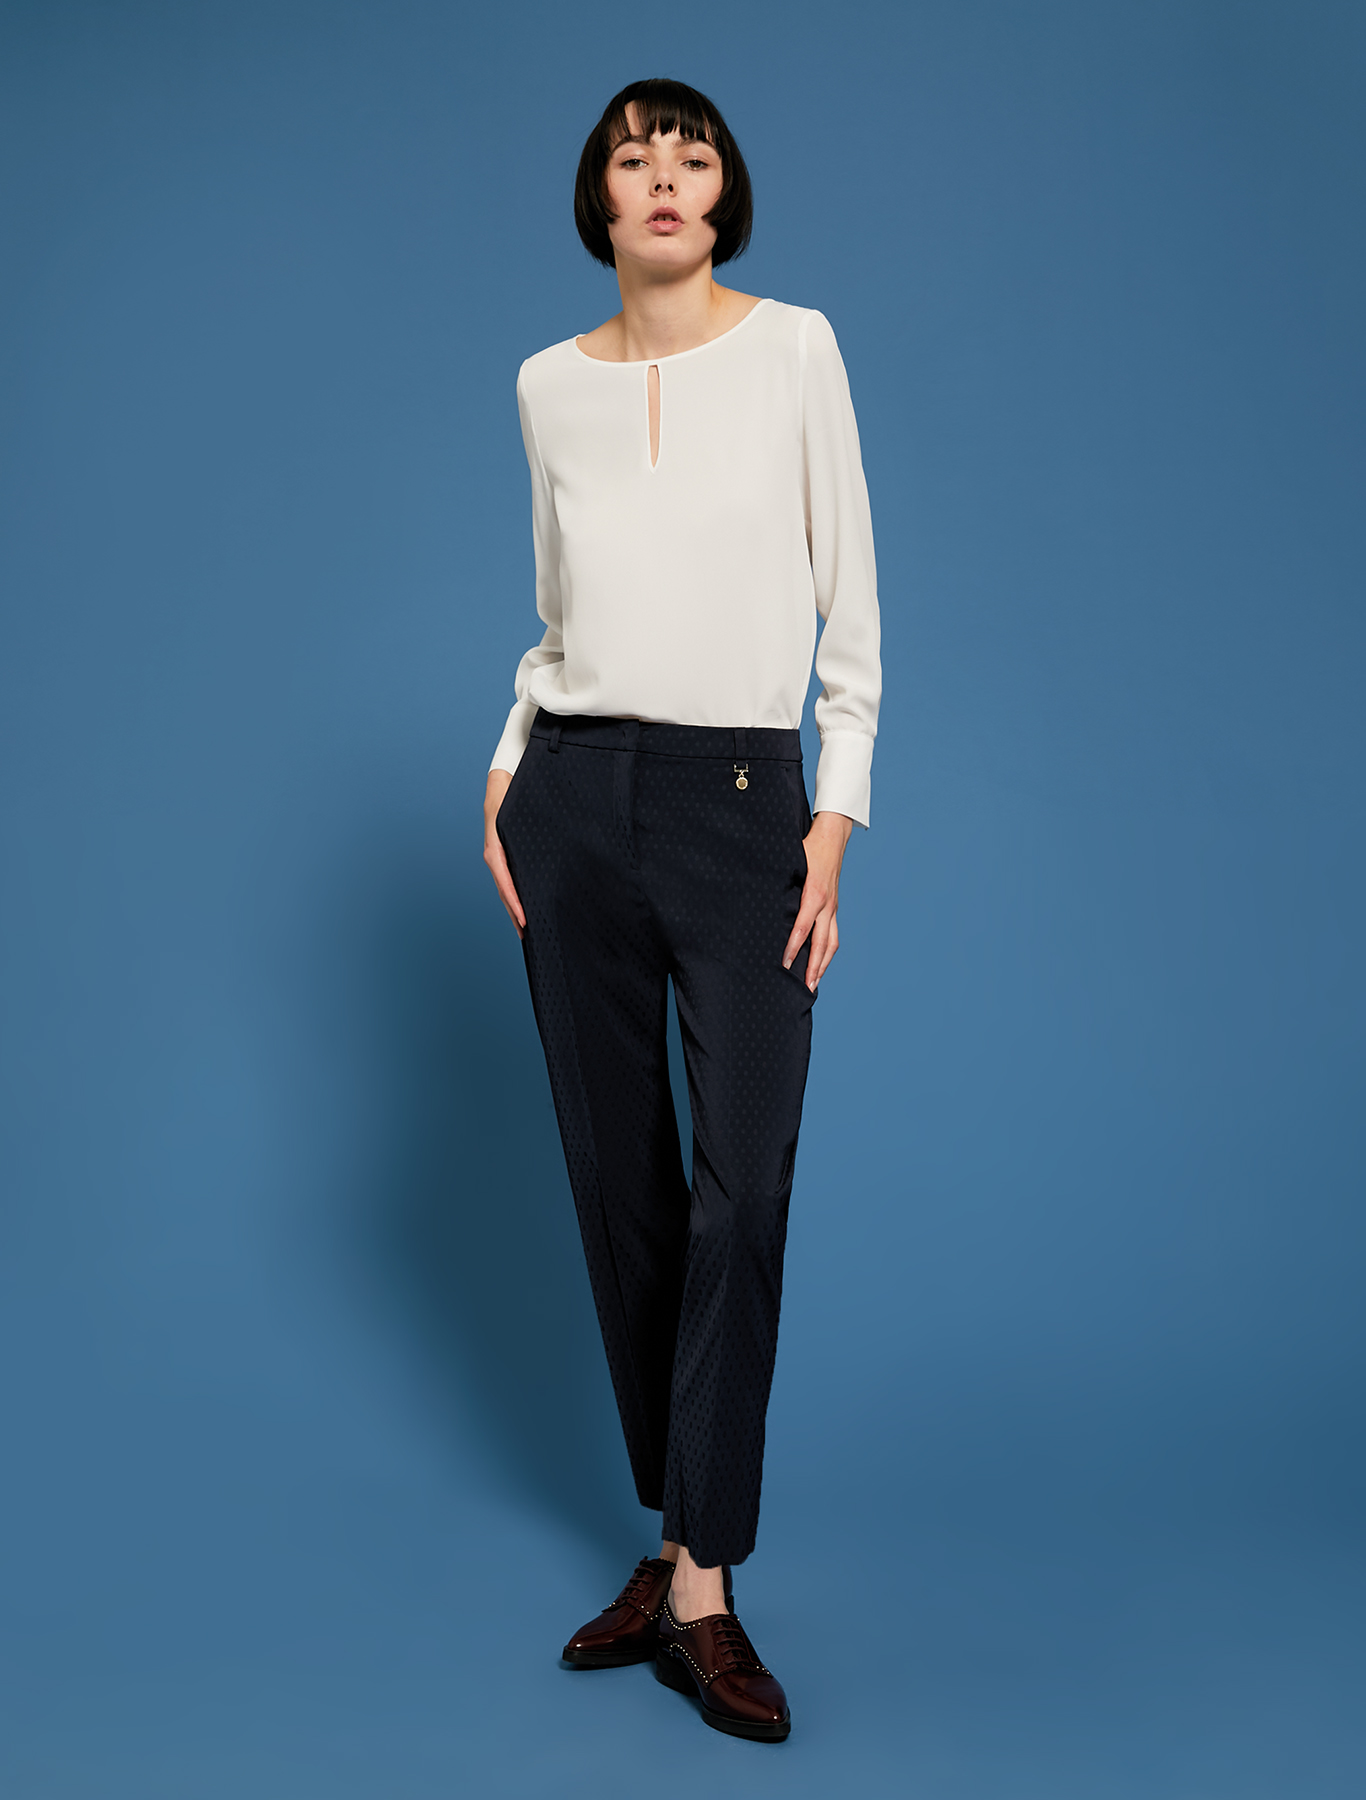 Slim-fit trousers with polka dots - navy blue - pennyblack